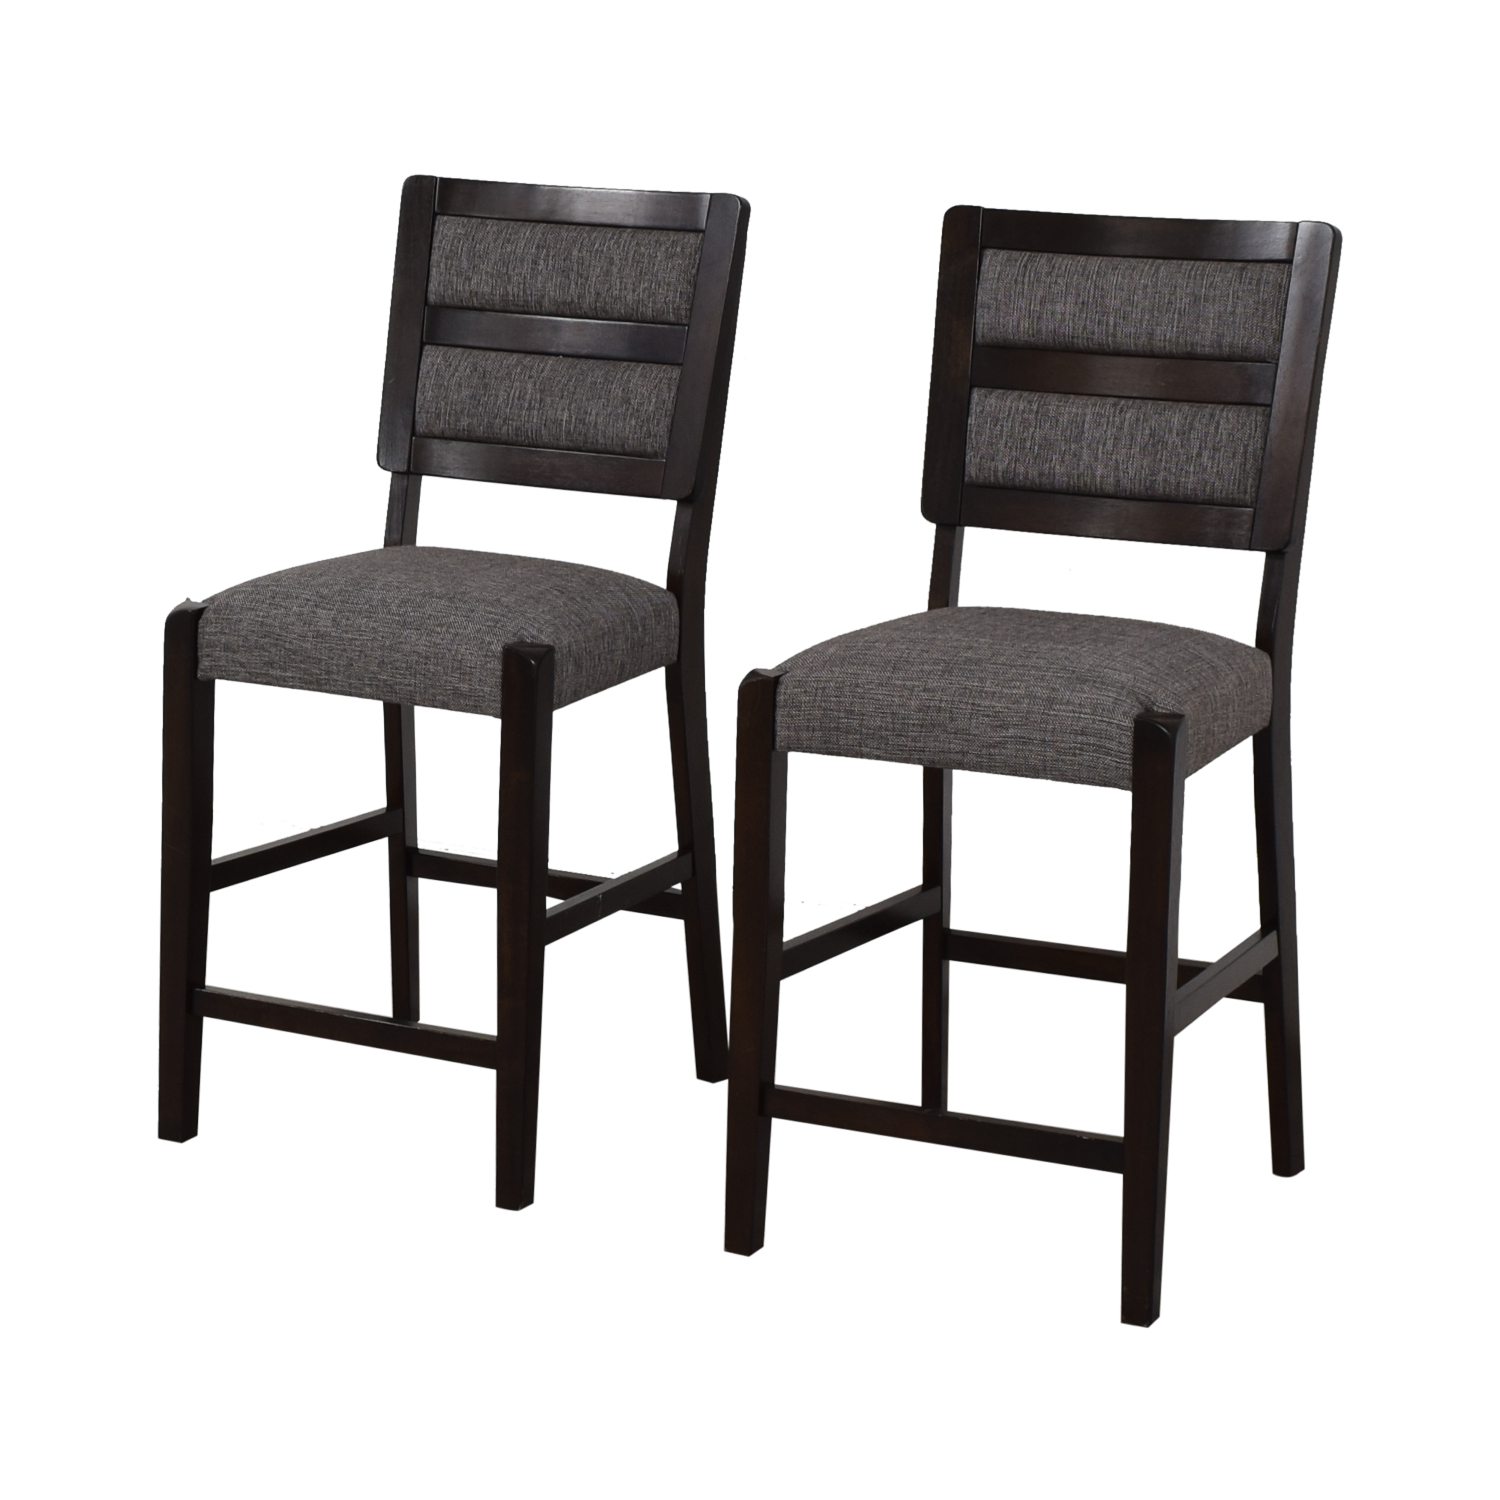 Raymour & Flanigan Raymour & Flanigan Grey Upholstered Counter Height Stools dimensions